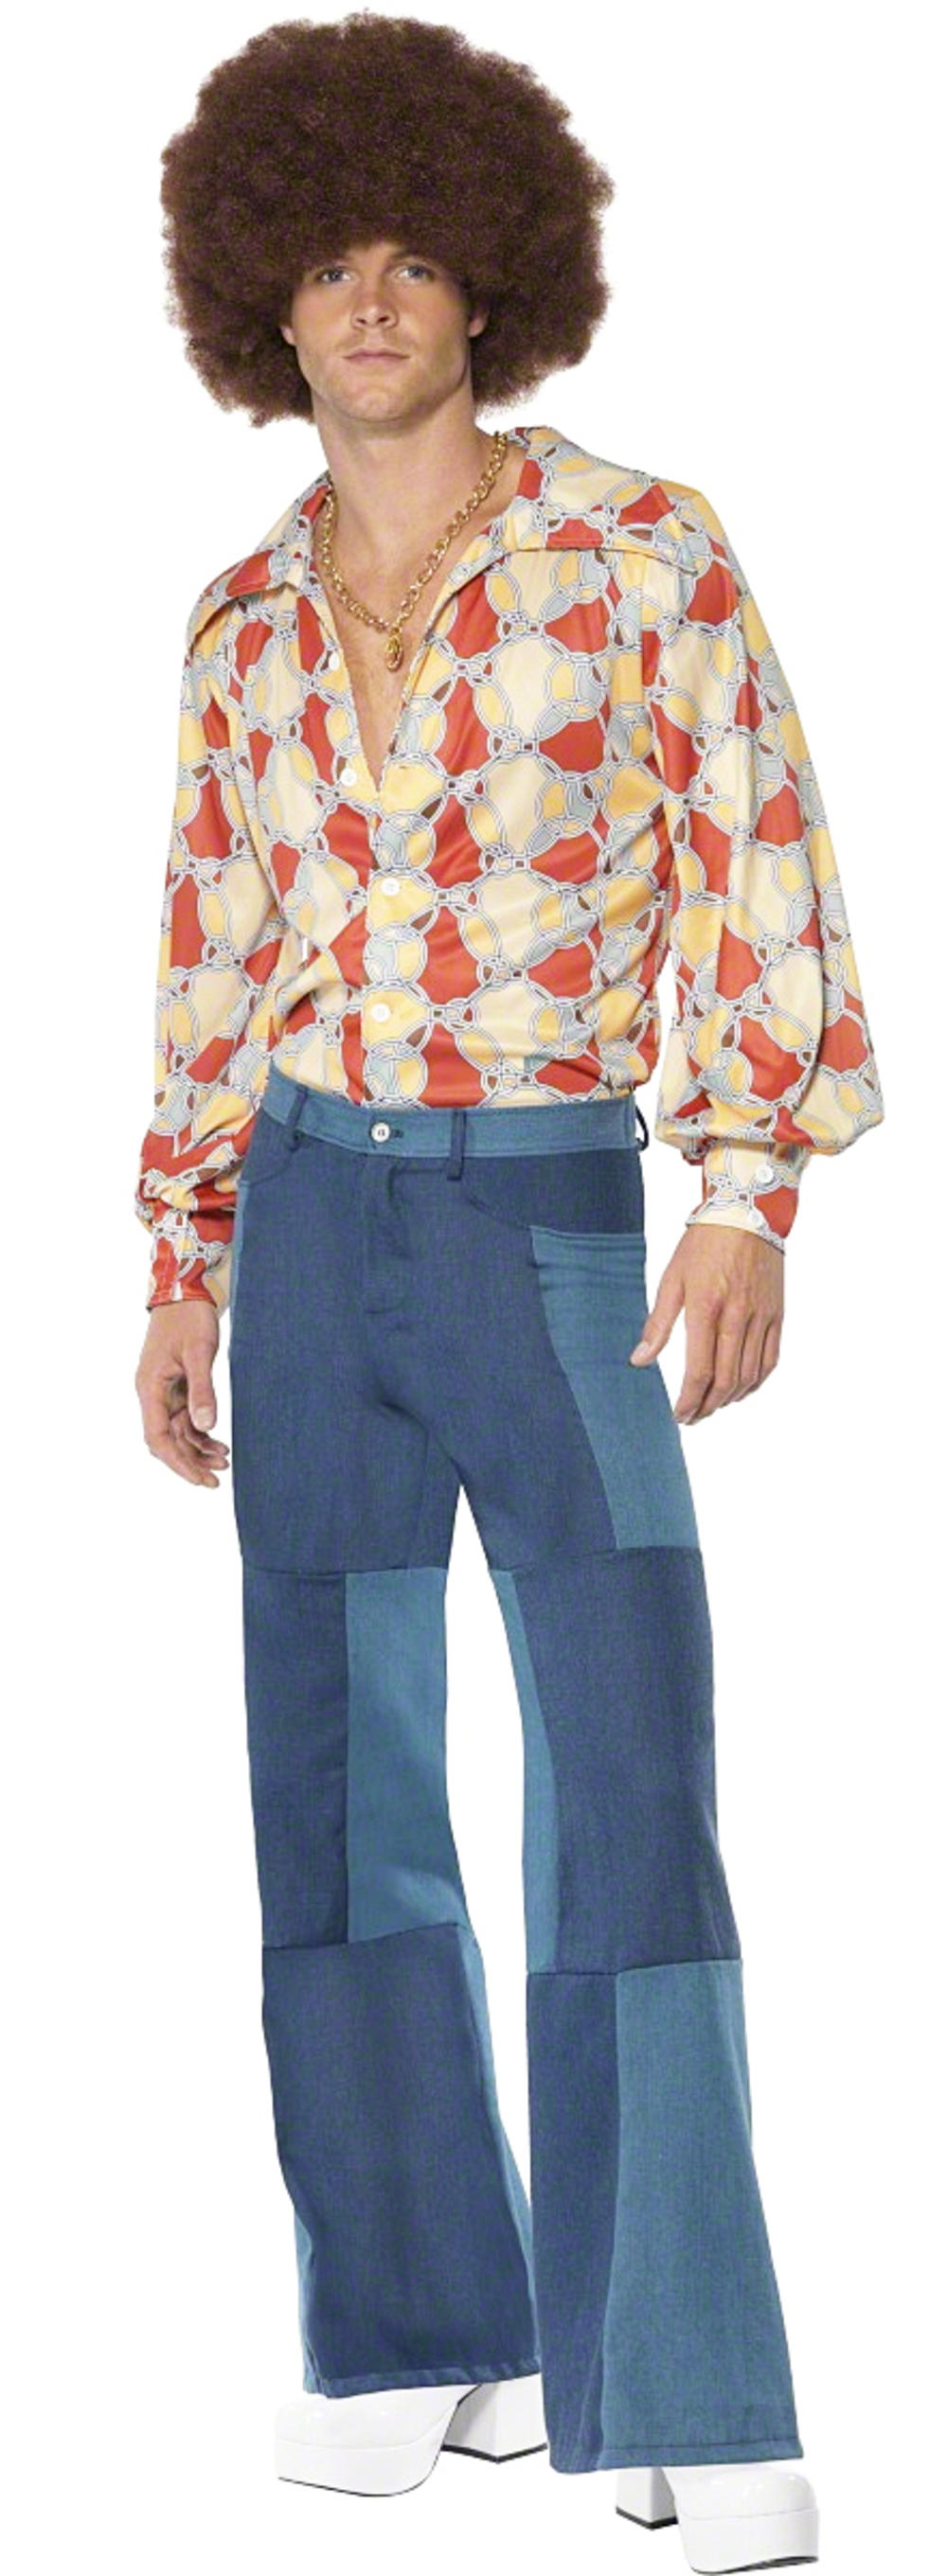 1970s Disco Flares + Shirt Fancy Dress Mens 70s Costume Adult Seventies Outfit